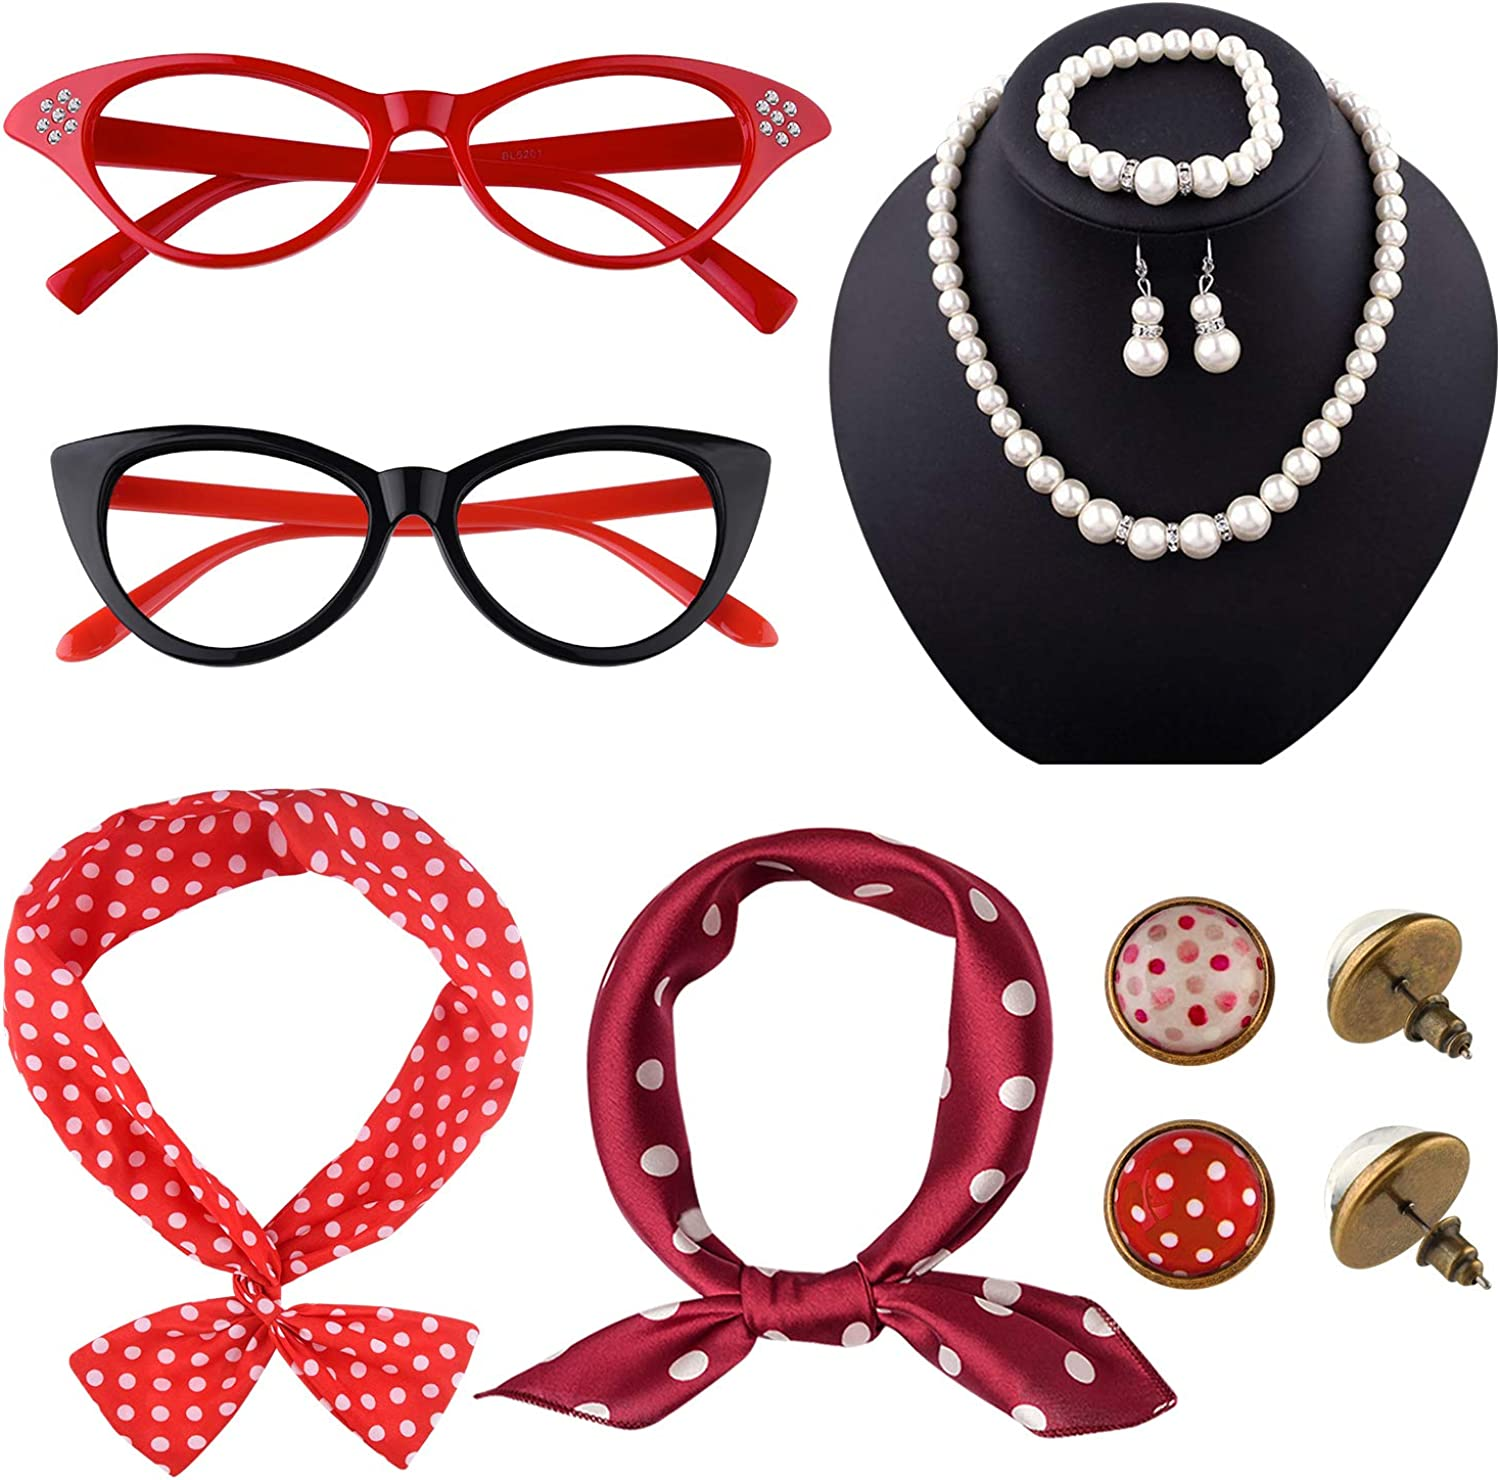 TUPARKA 12 Sales Pieces 50s Costume Accessories Set Cat Special Campaign Eye Fa Glasses